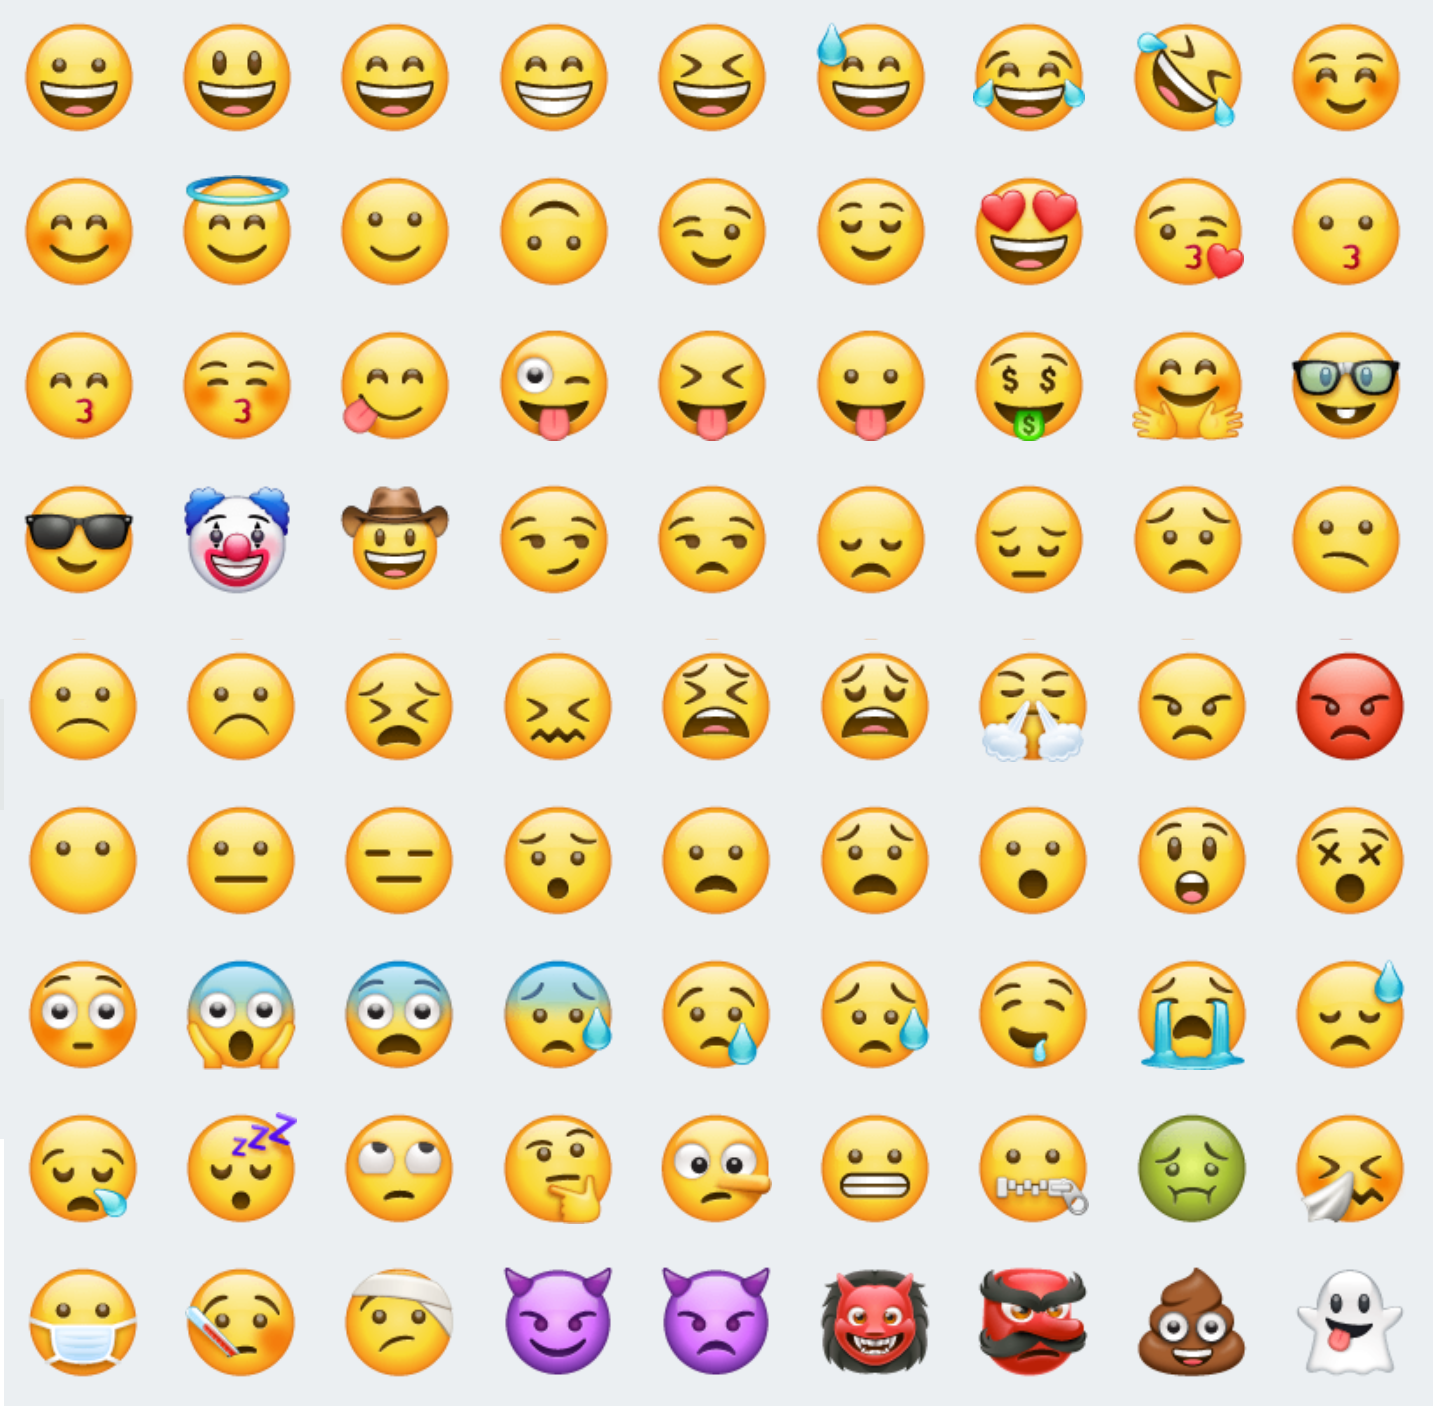 whatsapp emoji new redesigned set rolls out to users the independent